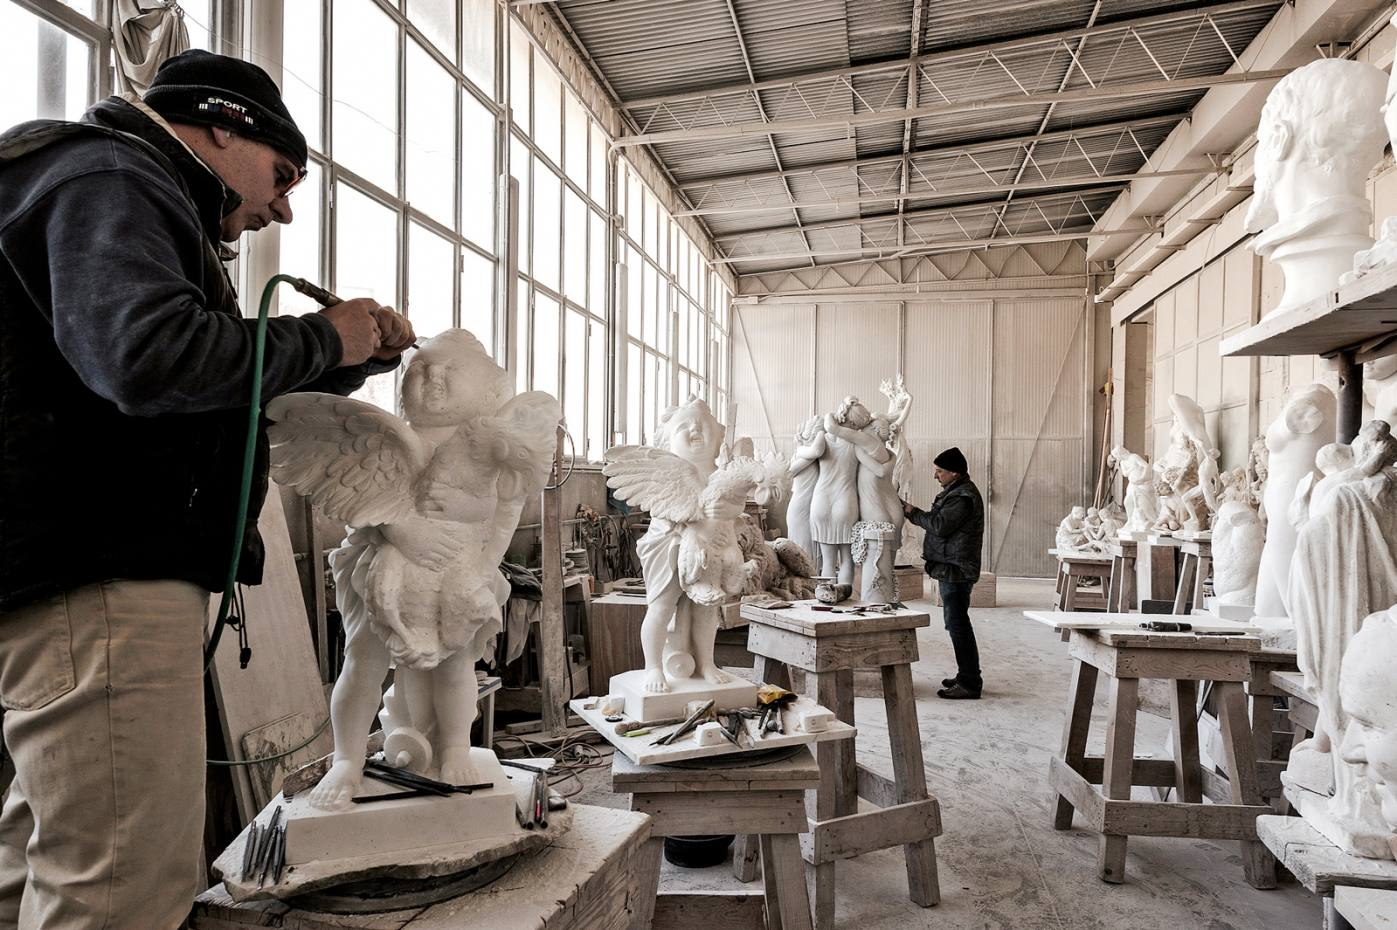 Tuscany Again's tailormade experiences include visits to the studios of top artisans